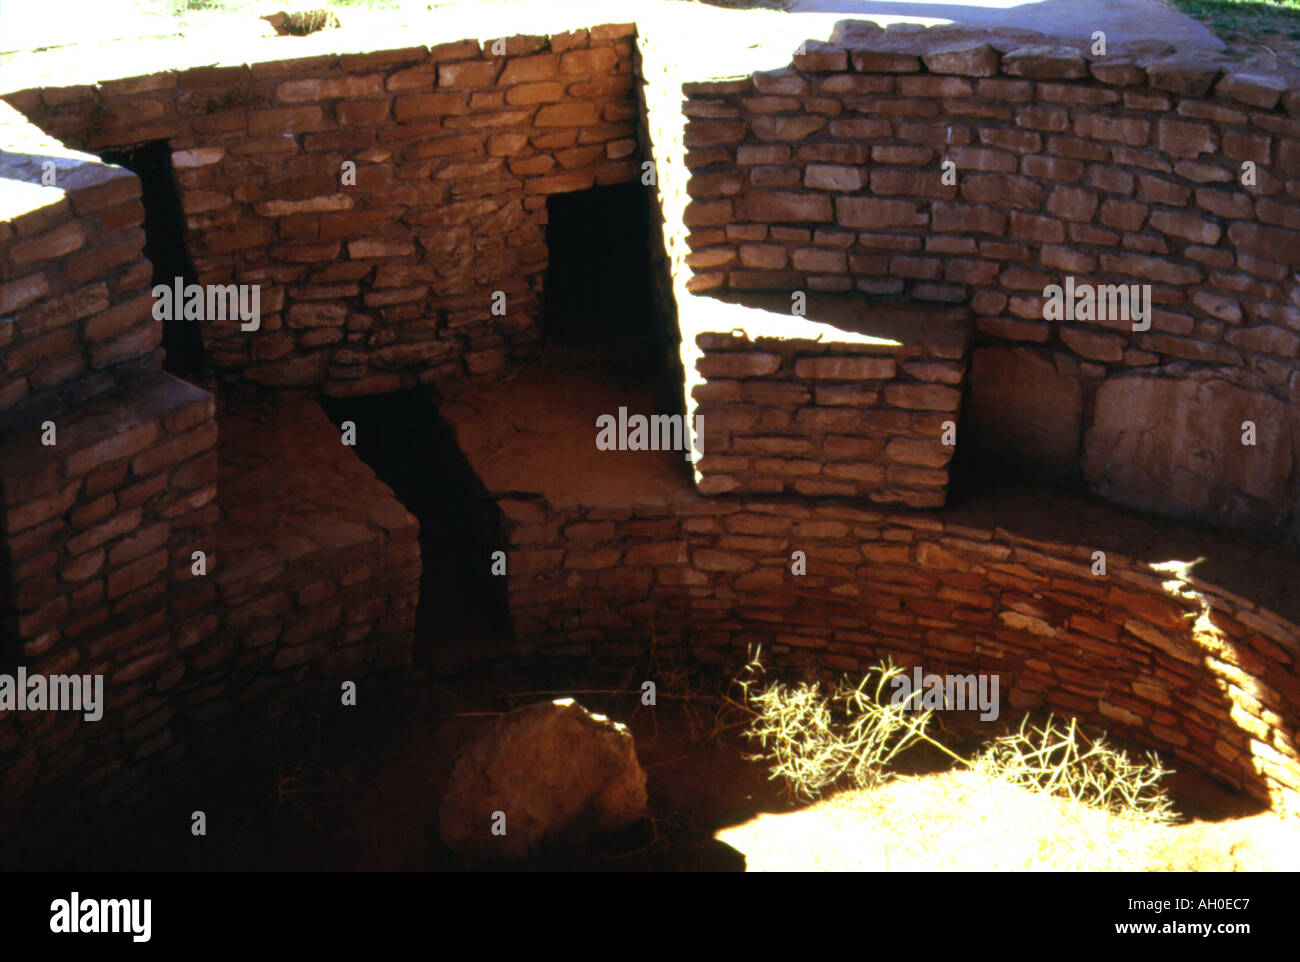 Reconstructed ancient Anasazi kiva in Butler Wash, Utah - Stock Image